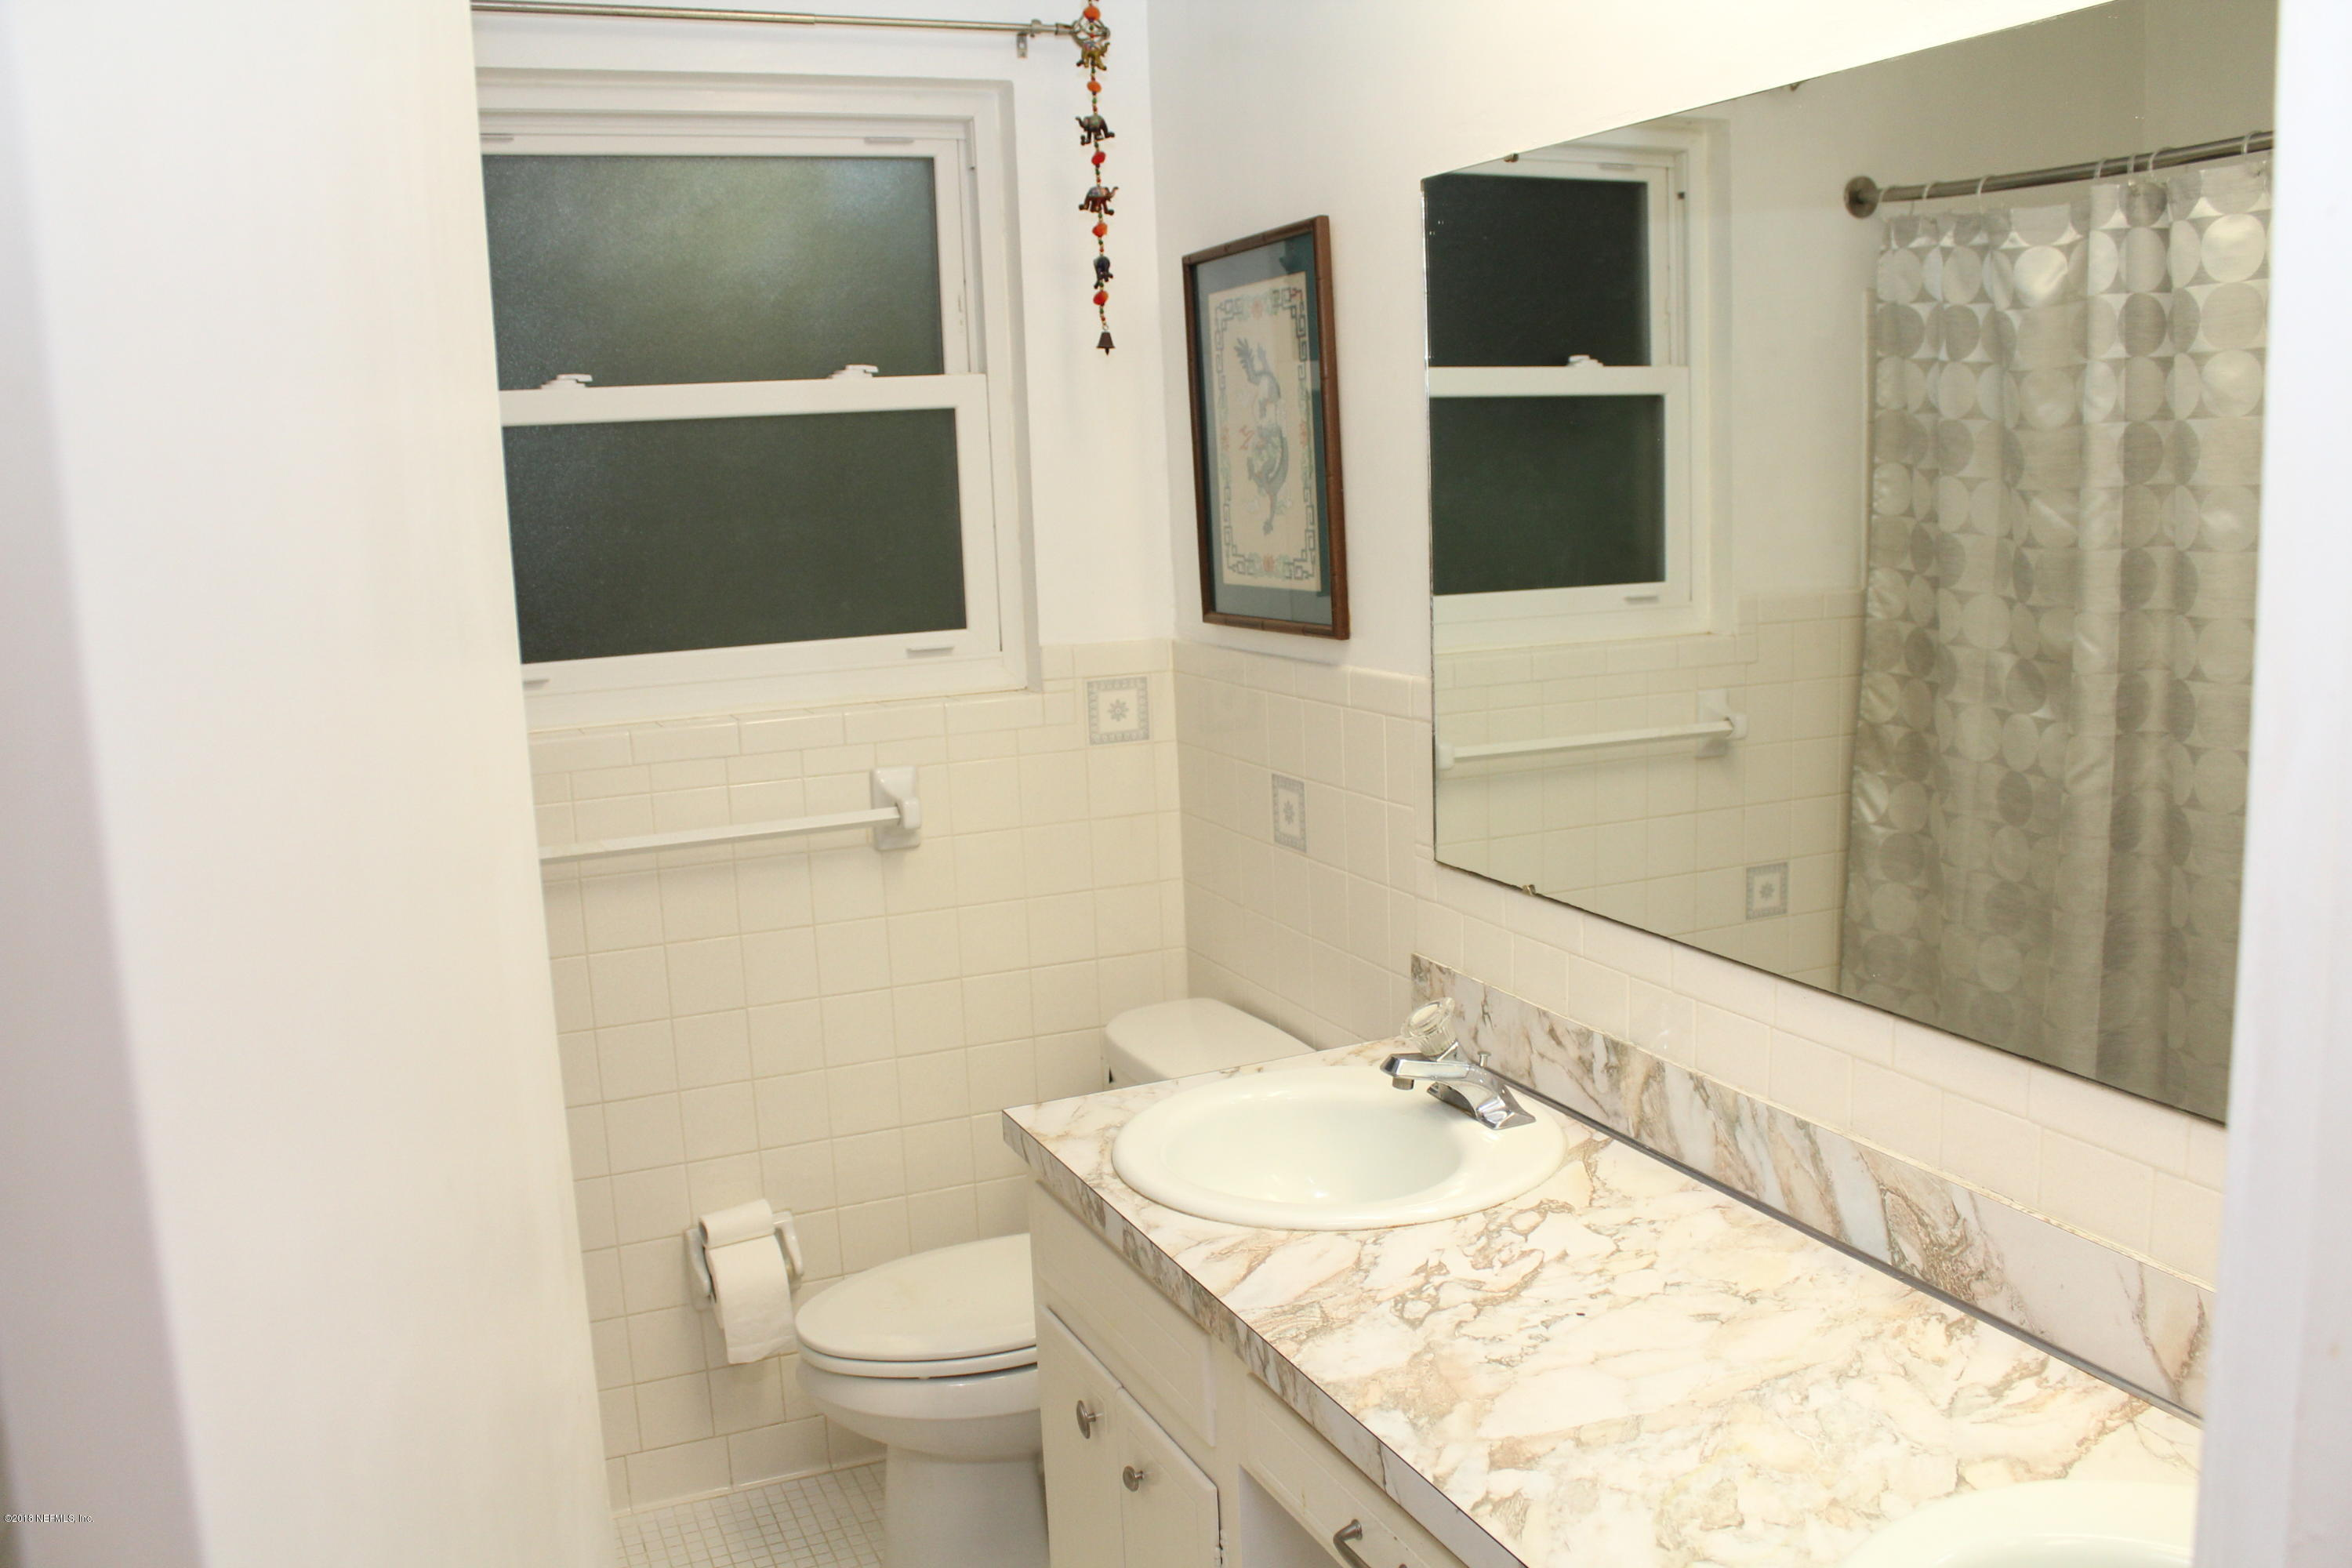 8914 RUNNYMEADE, JACKSONVILLE, FLORIDA 32257, 3 Bedrooms Bedrooms, ,2 BathroomsBathrooms,Residential - single family,For sale,RUNNYMEADE,947322